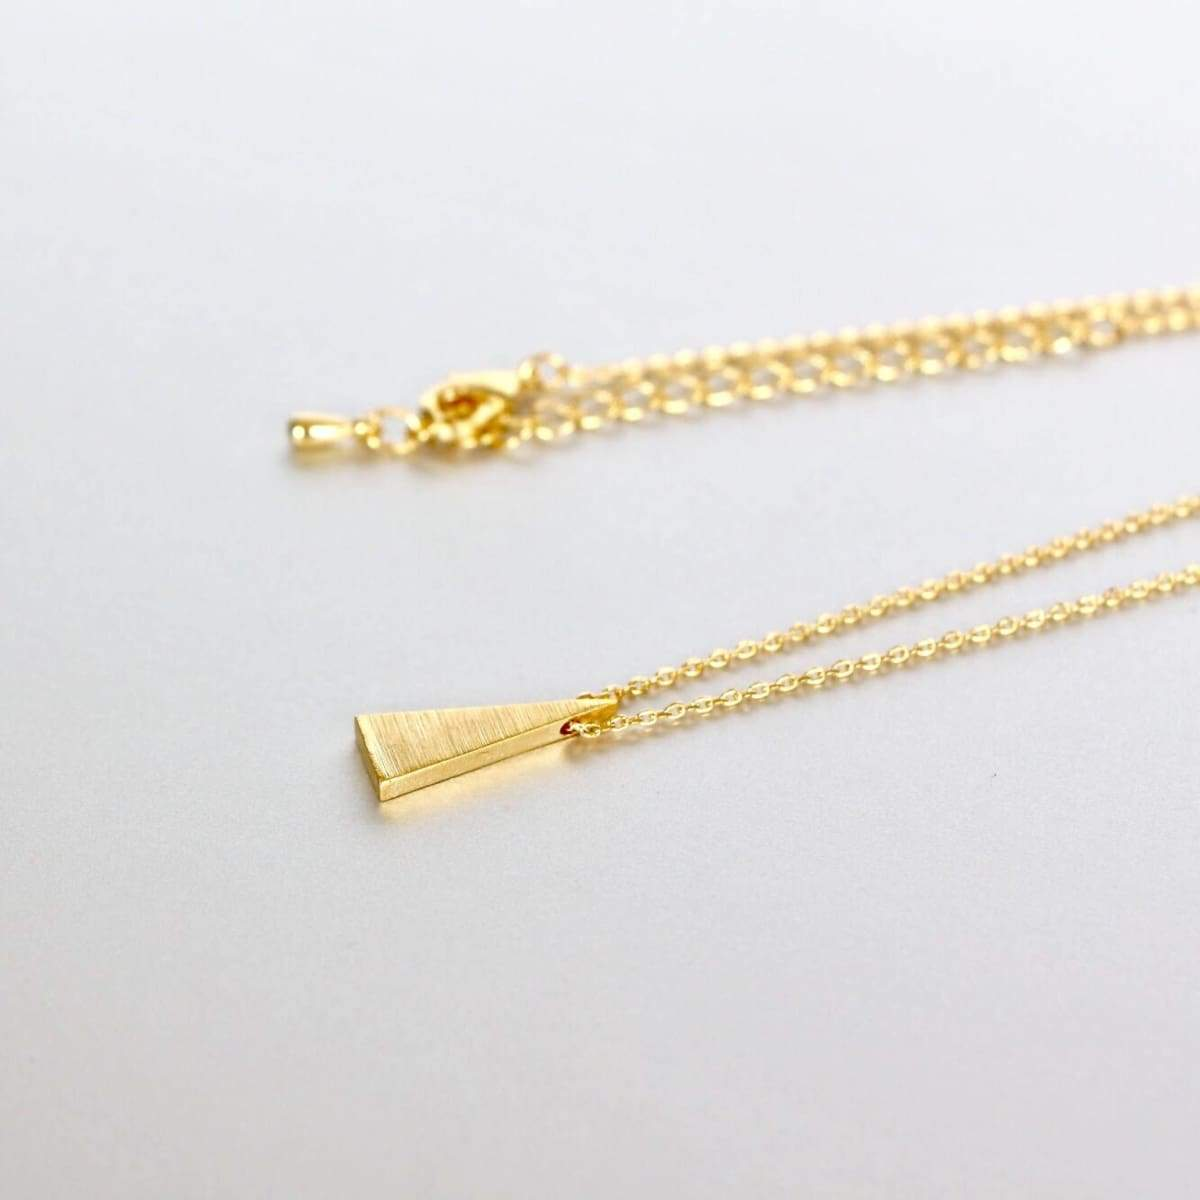 Necklaces Necklace Set Triangle Gold And Rhodium Charm Dipped Minimalist Bohochic Gift (SN81/82)